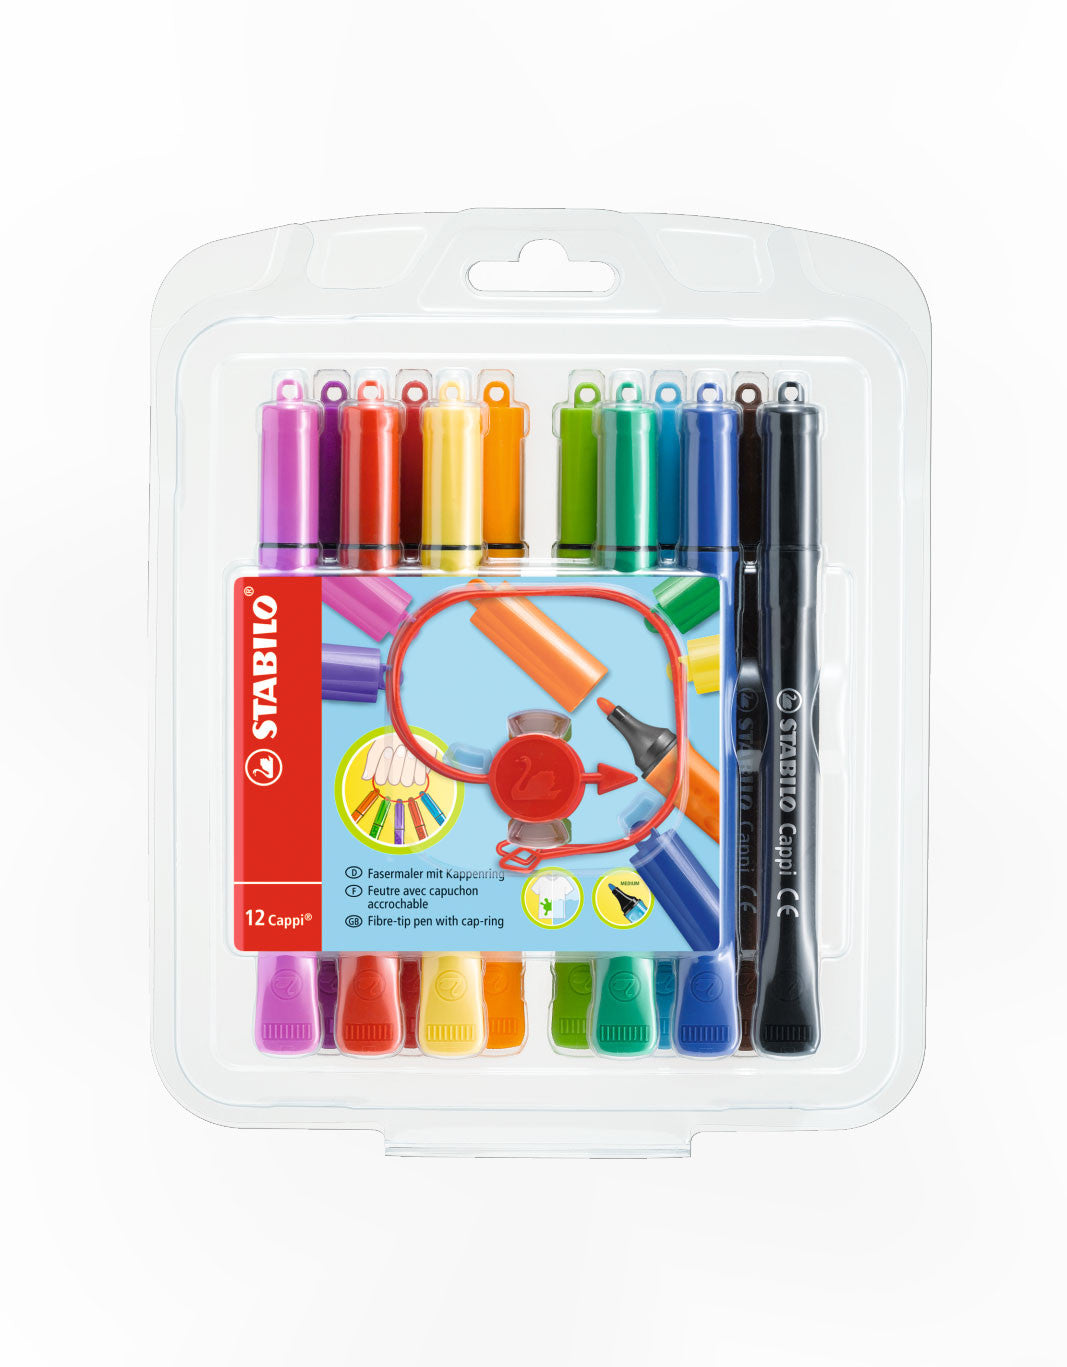 STABILO Cappi Fibre-tip Markers - Schwan-STABILO -Most colourful Stationery Shop